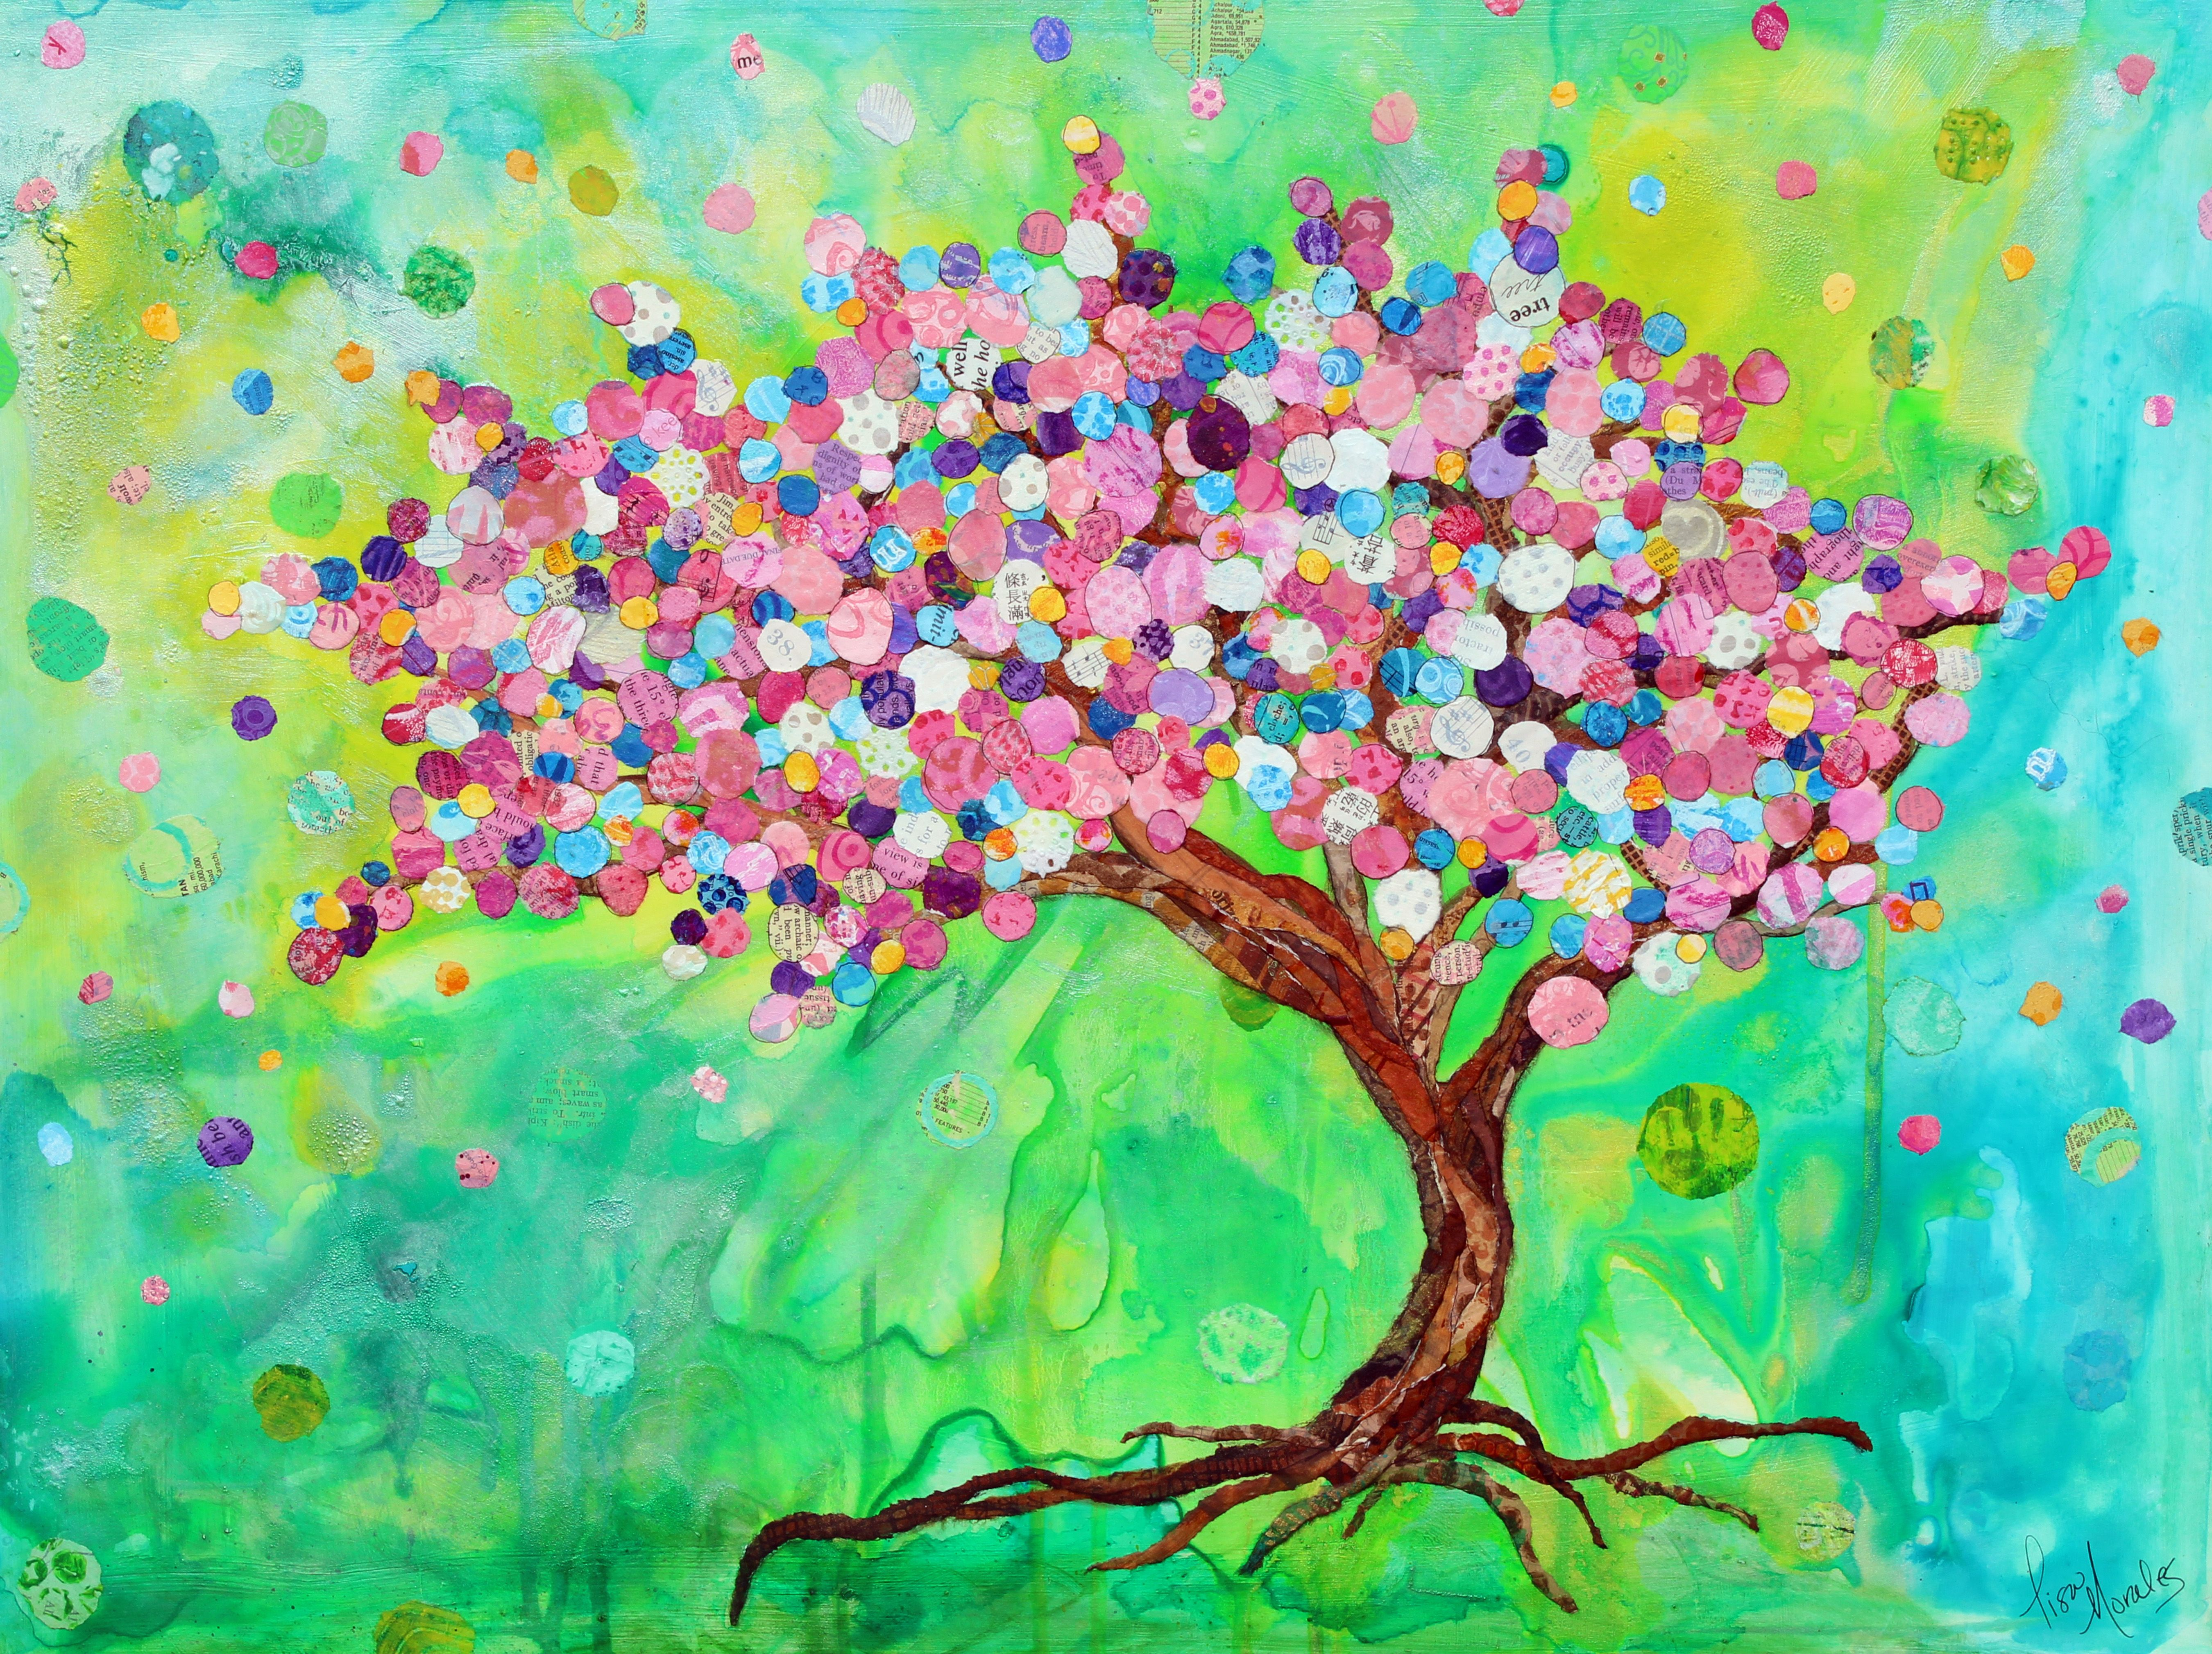 Mixed Media Collage by Lisa Morales - The Blessing Tree - www ...